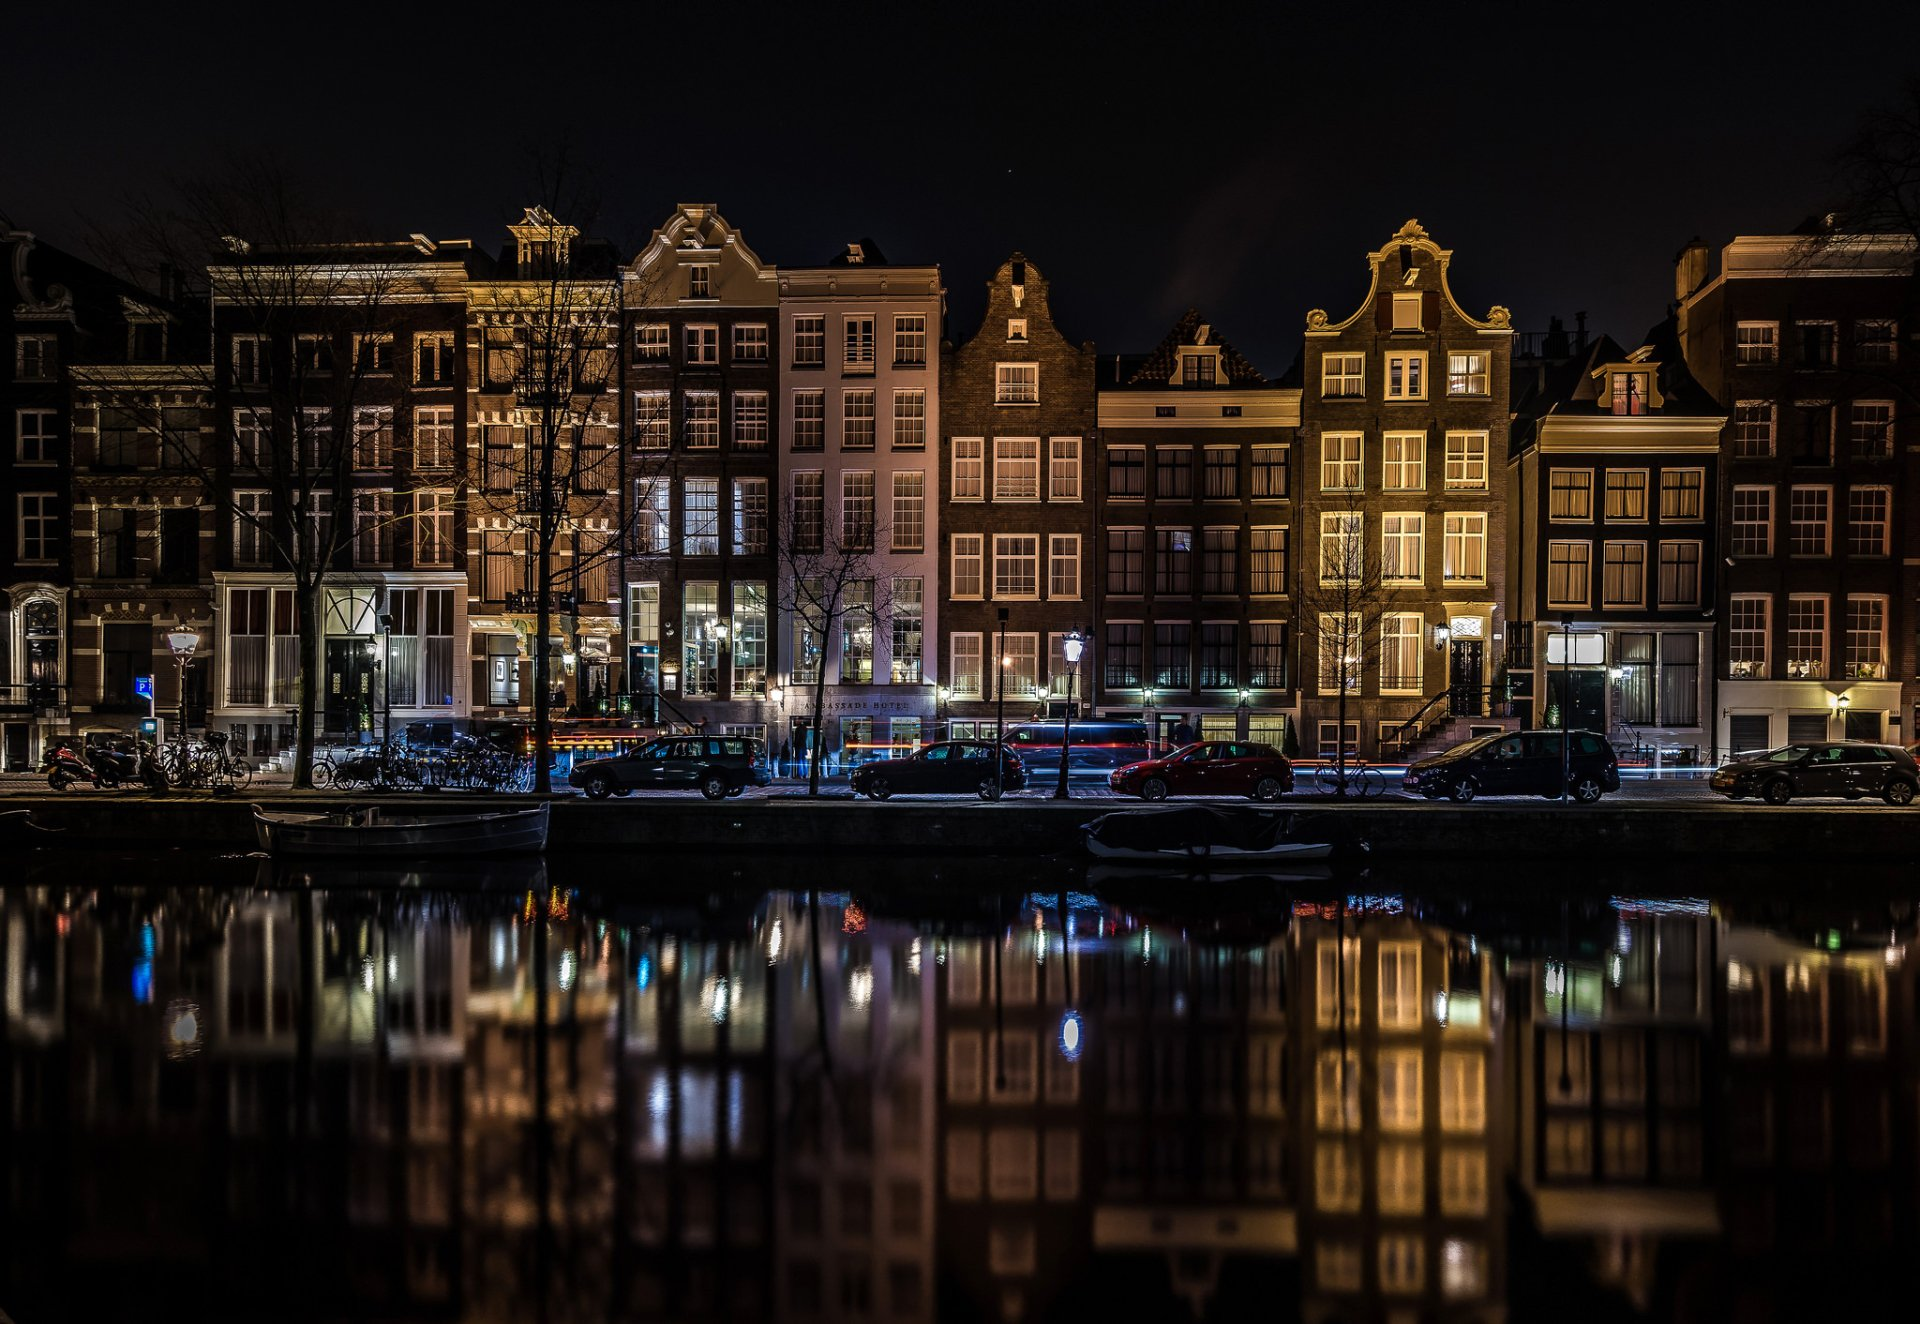 Man Made - Amsterdam  Netherlands Canal Night House Reflection Light Wallpaper